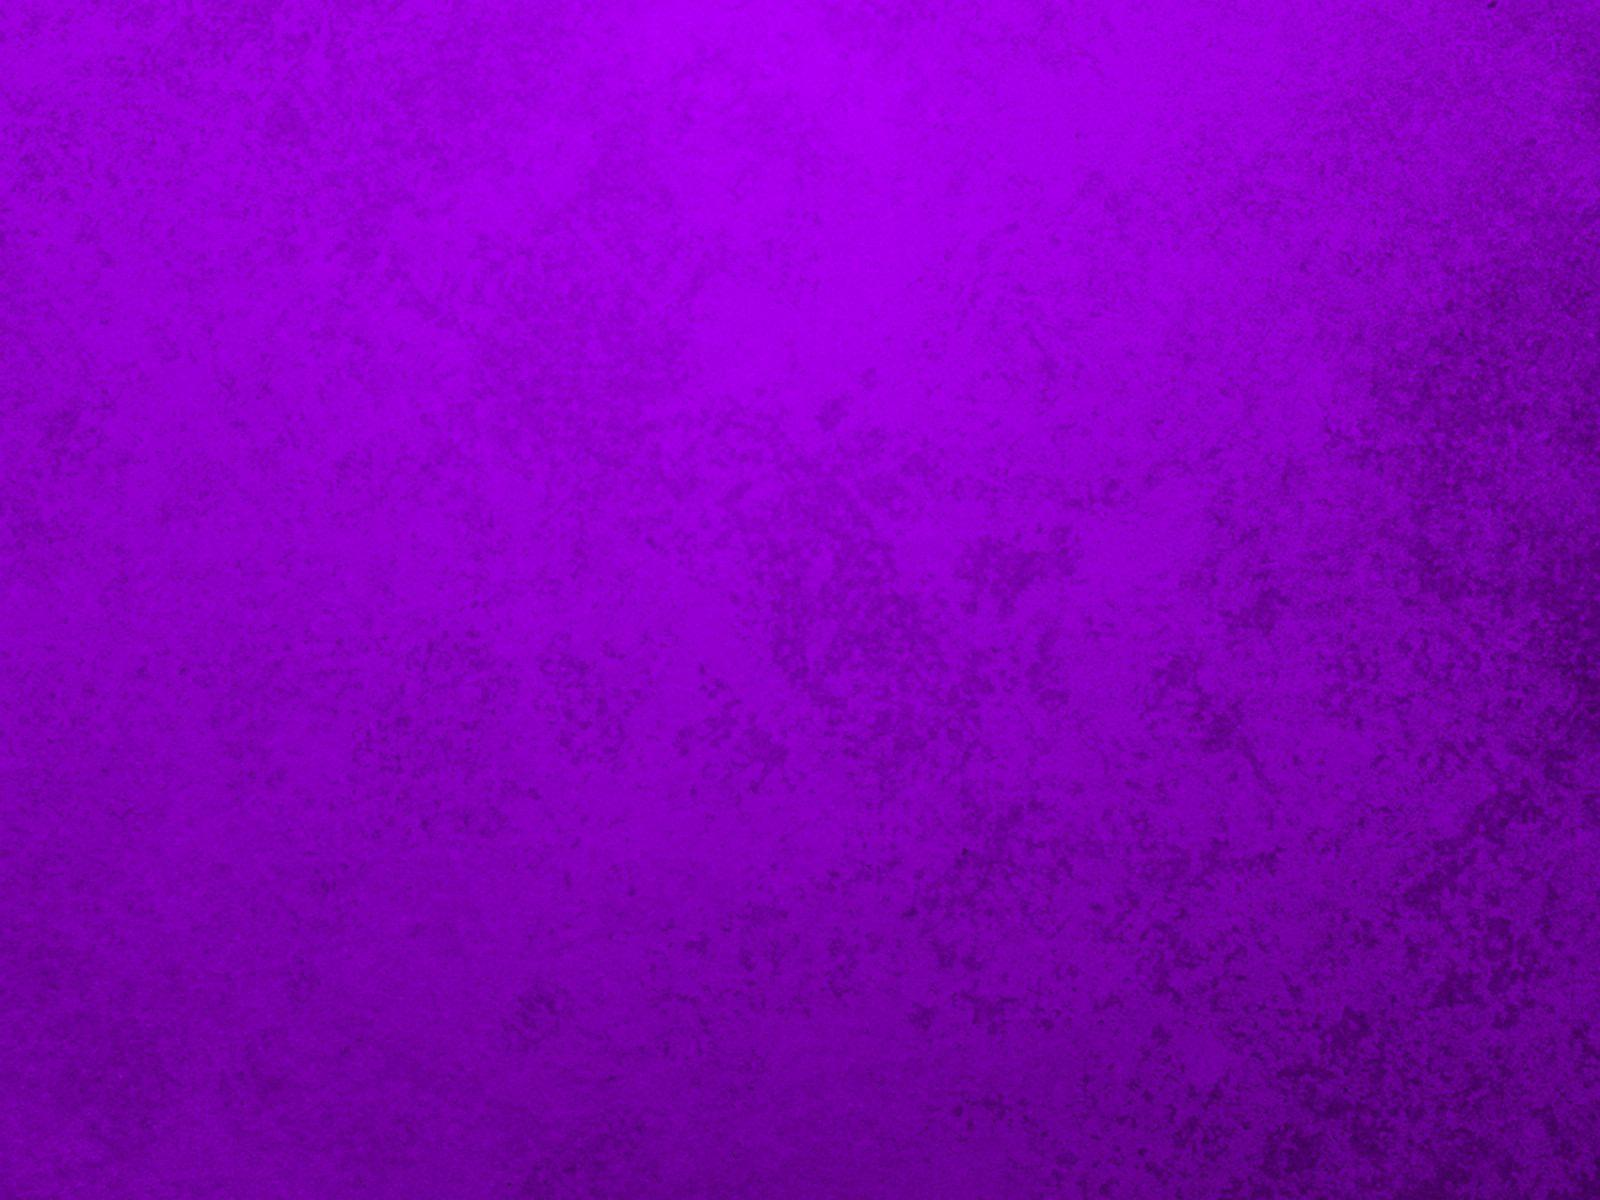 wallpaper bright line purple - photo #4